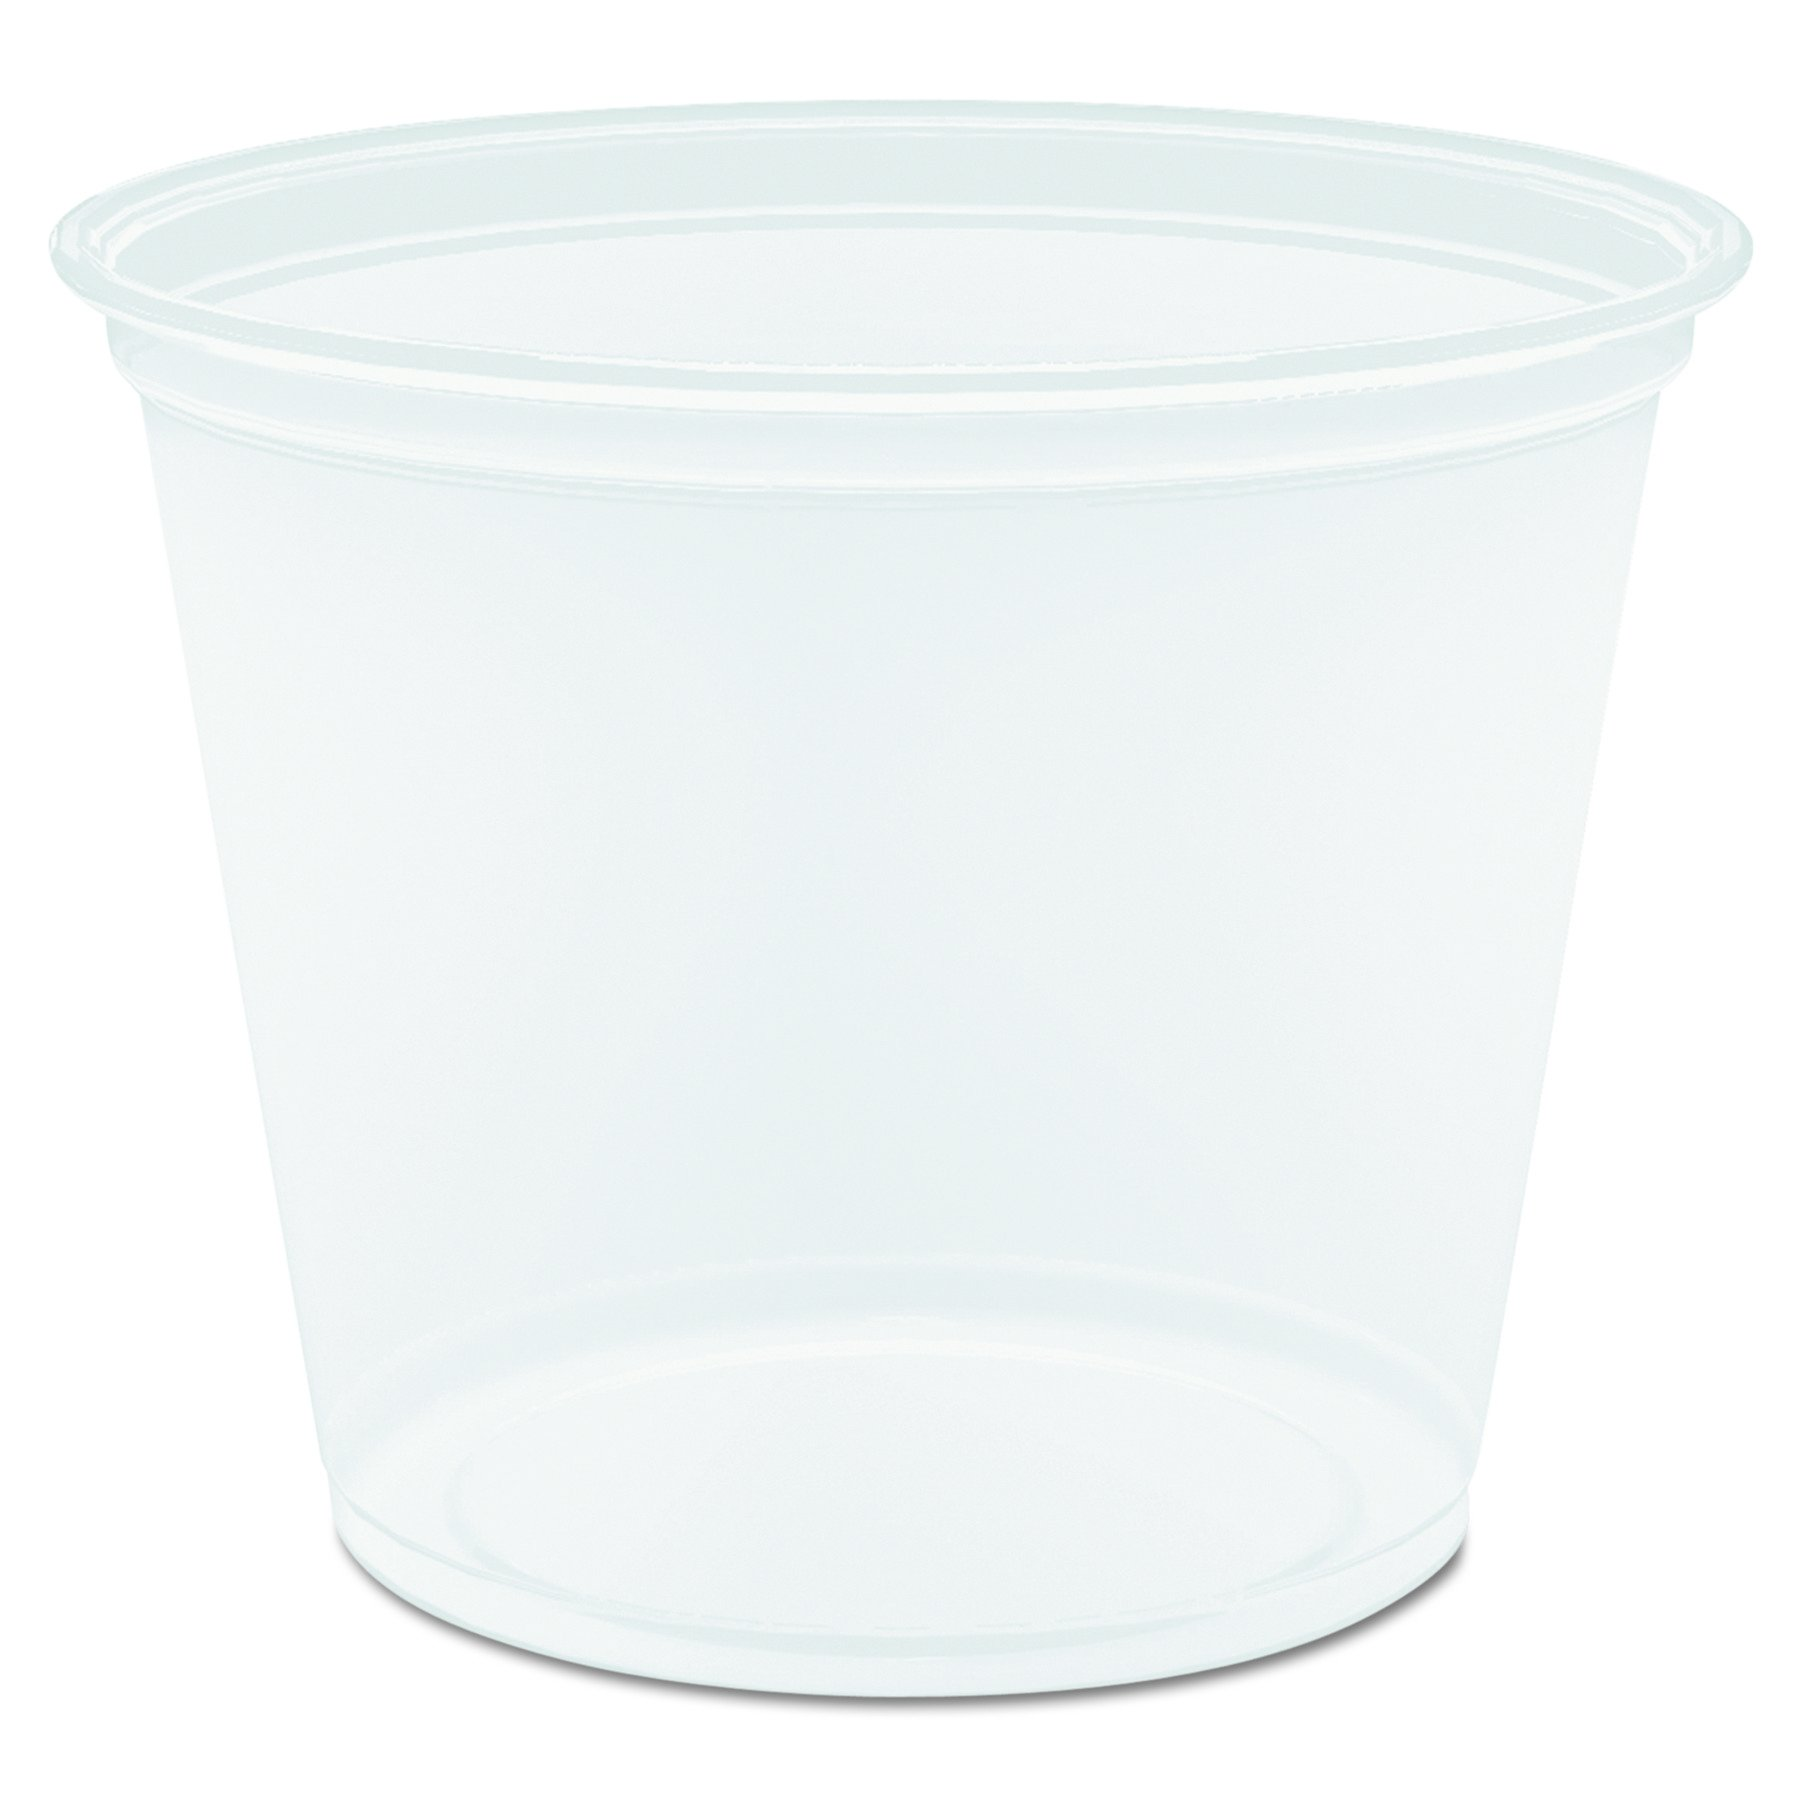 DART 550 Piece 2.9'' Top and 2.1'' Bottom Diameter, Clear Conex Complements Plastic Portion Cup, 5.5 oz. by DART